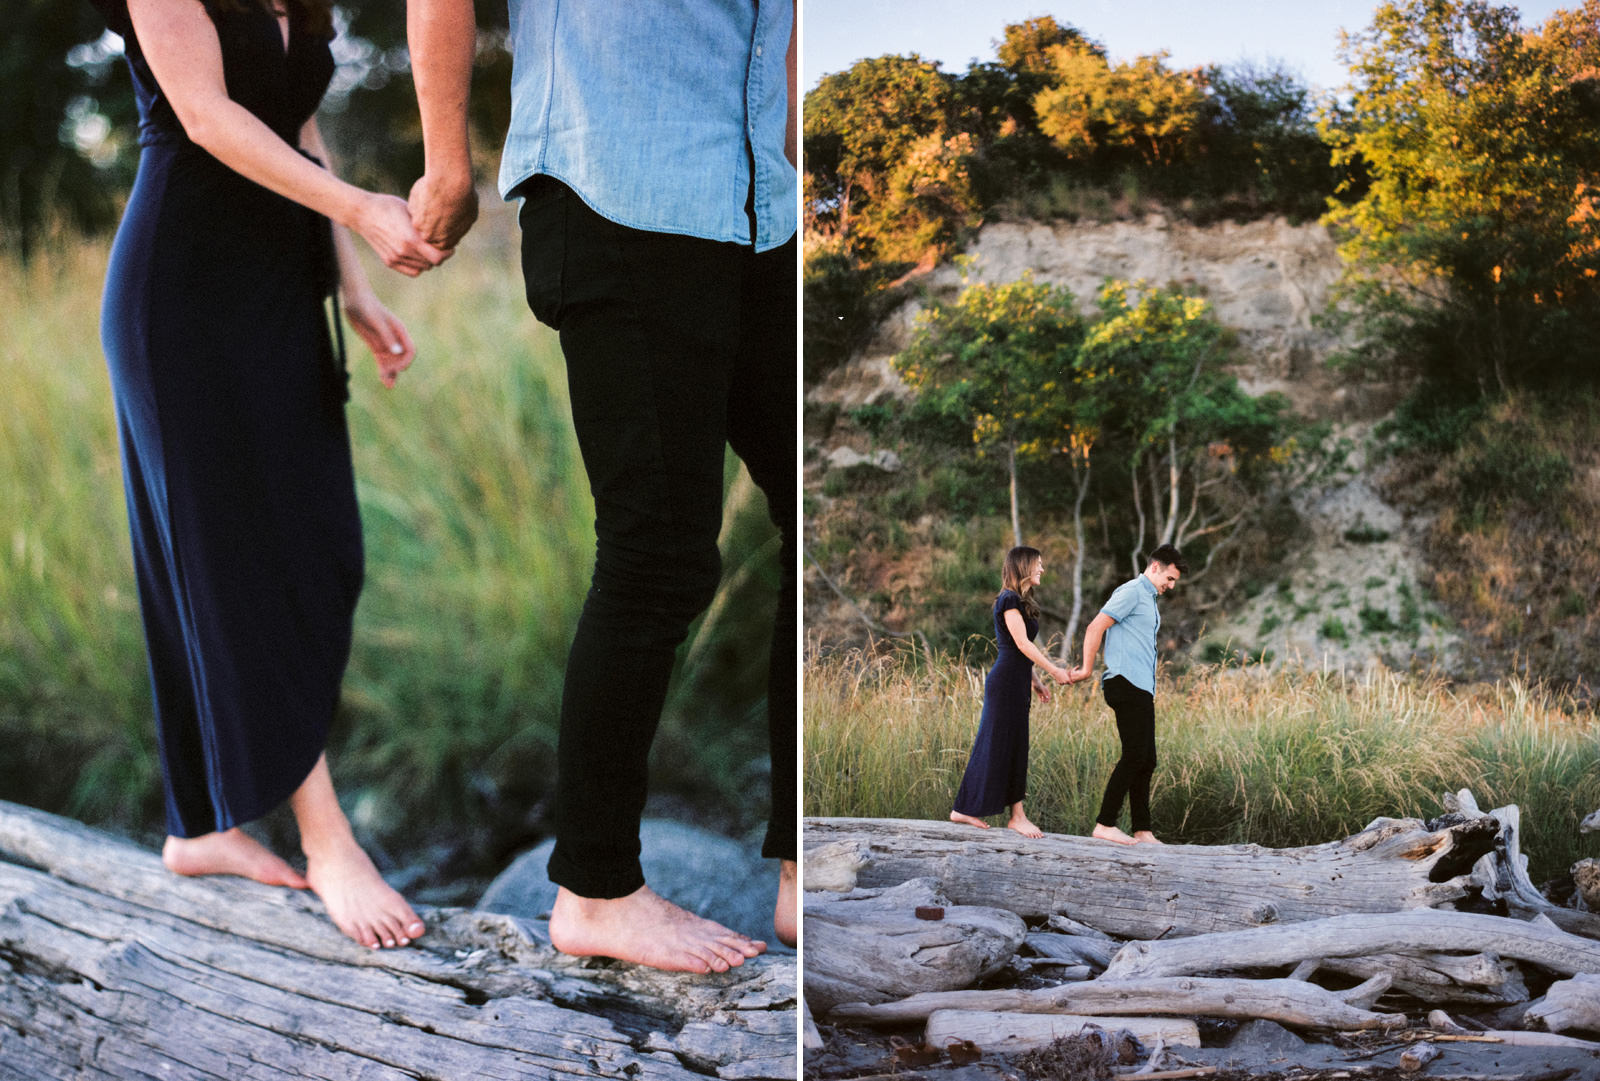 060-summery-engagement-session-with-a-goldendoodle-at-discovery-park-on-film.jpg